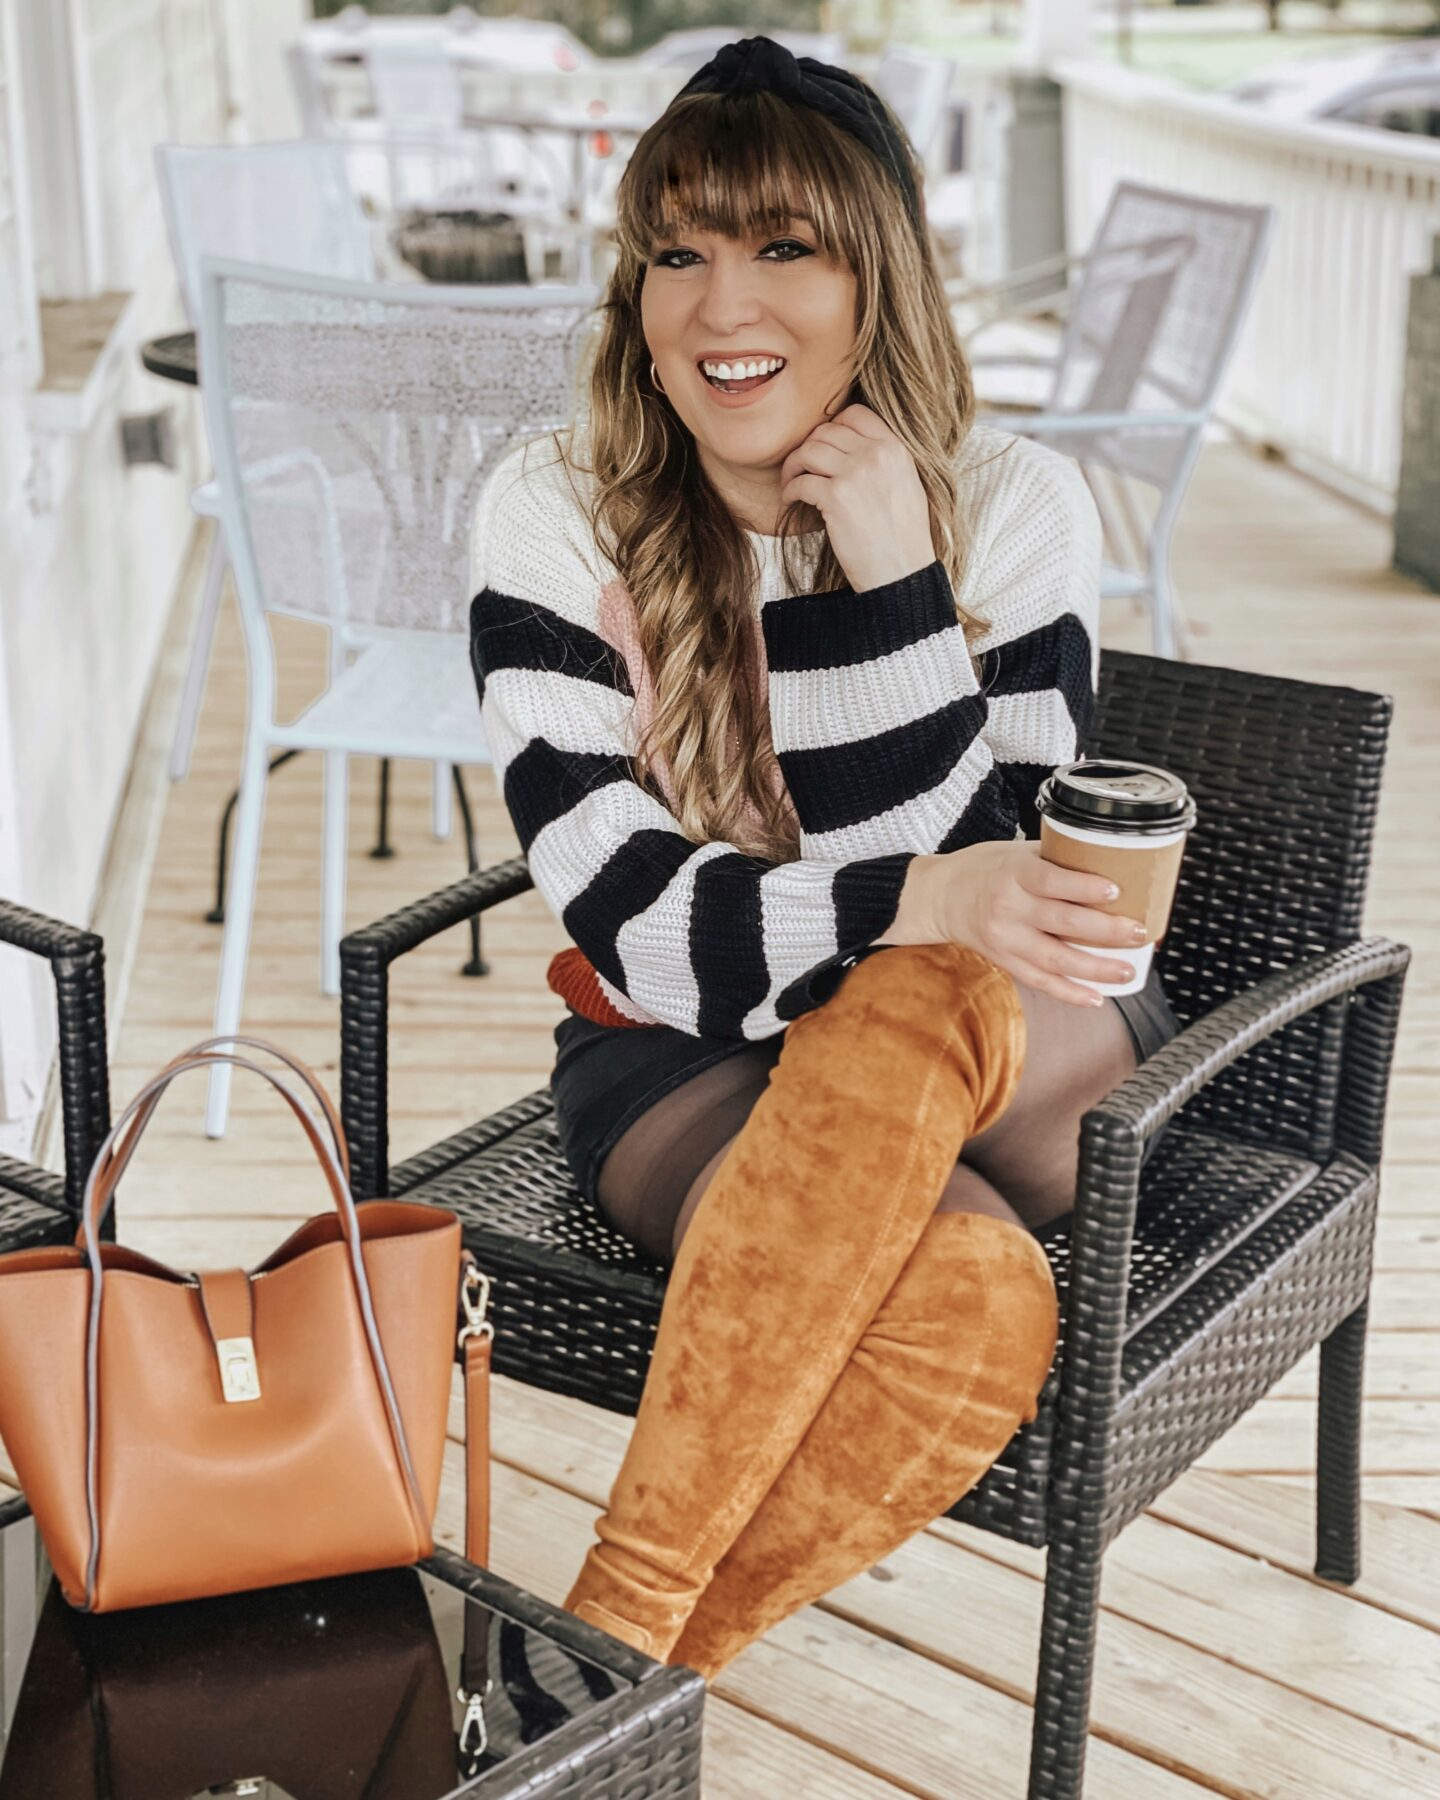 Fall outfit idea - Striped sweater and over the knee boots